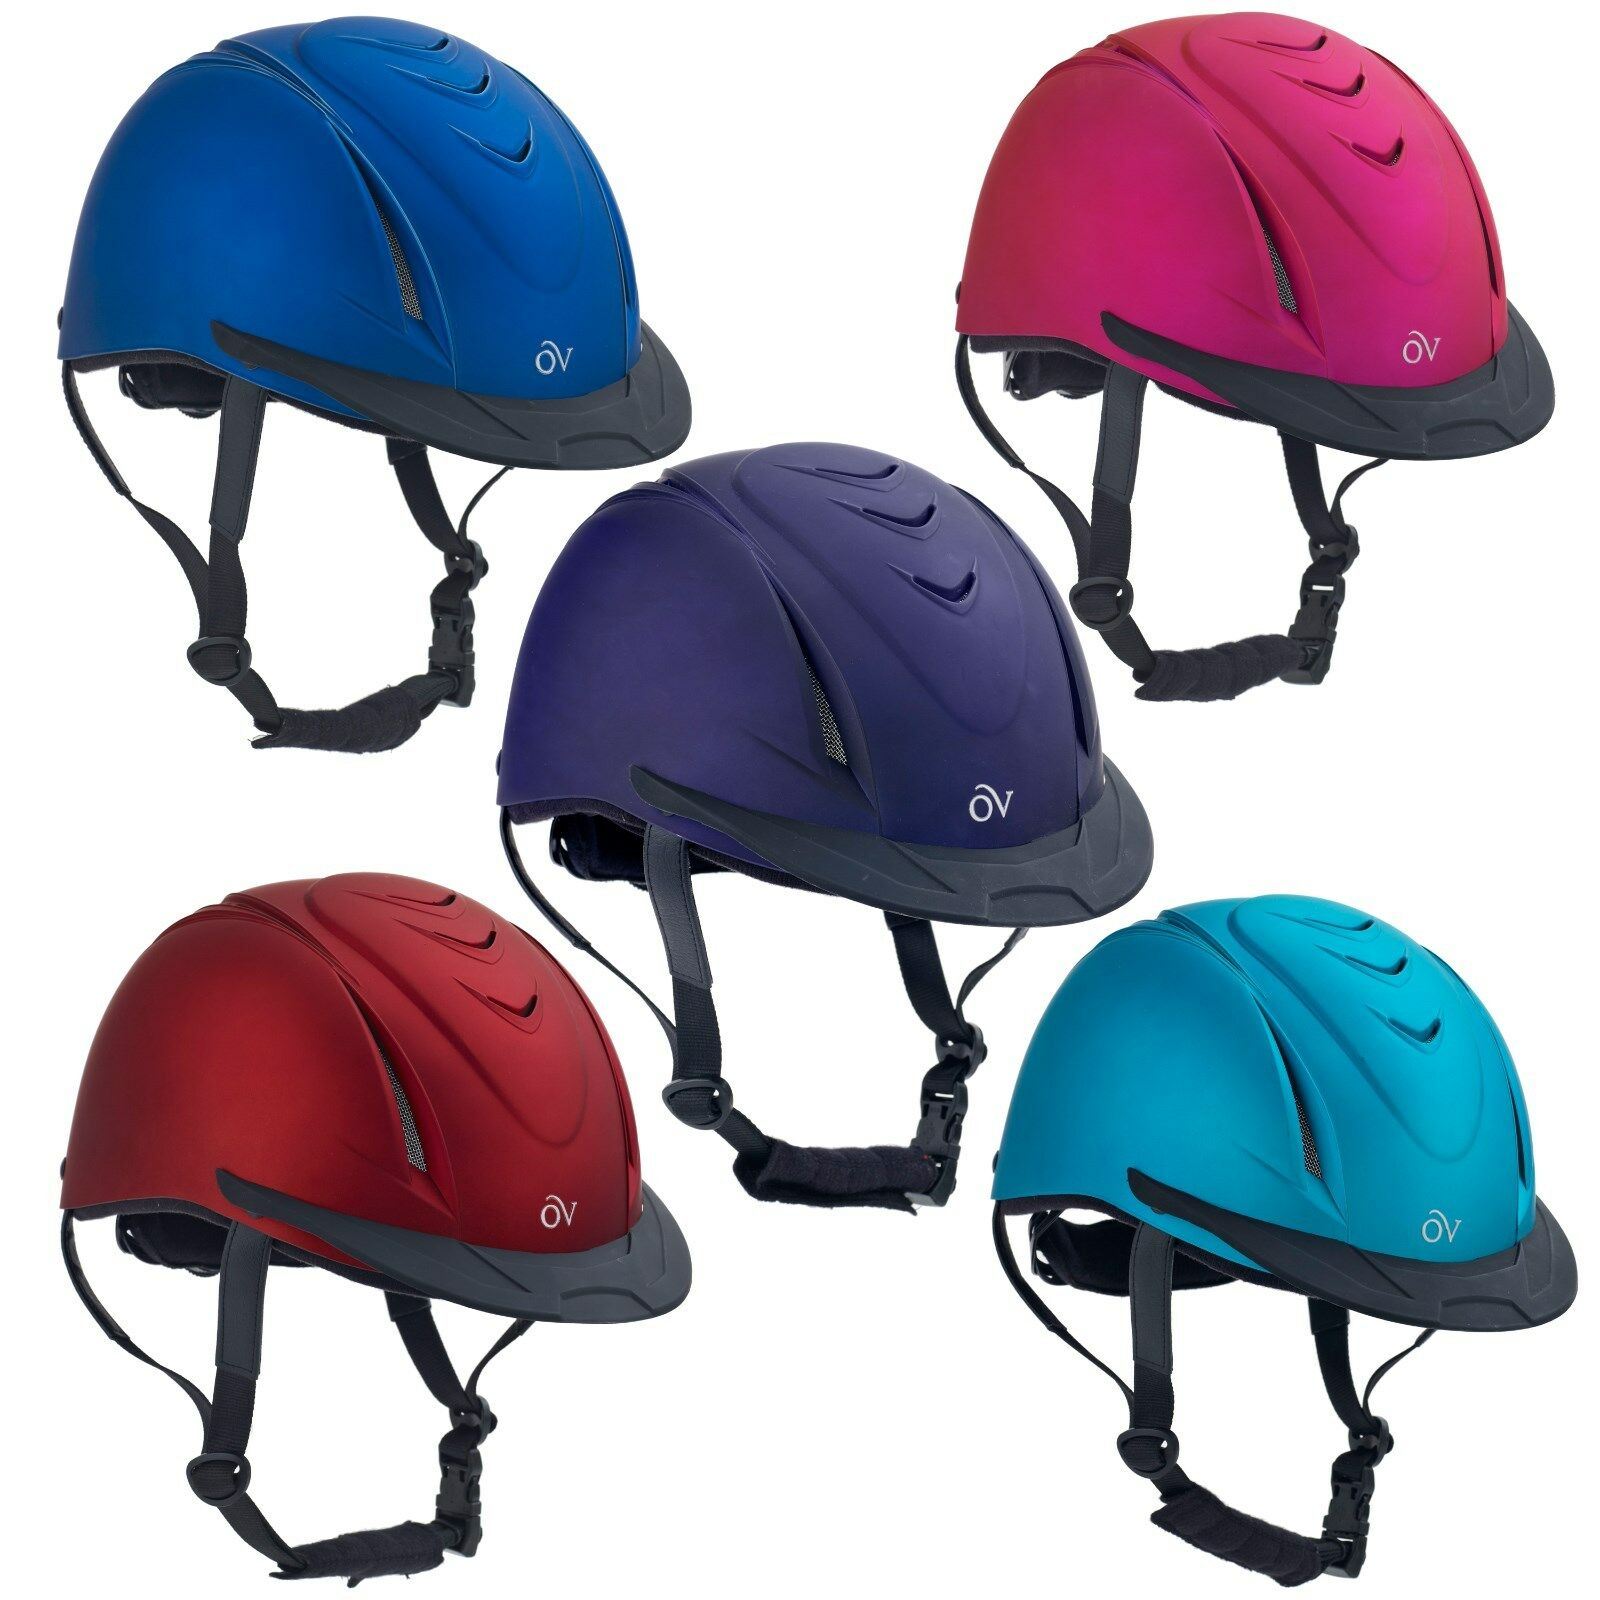 Ovation Metallic Helmet, Various Sizes  & colors  come to choose your own sports style